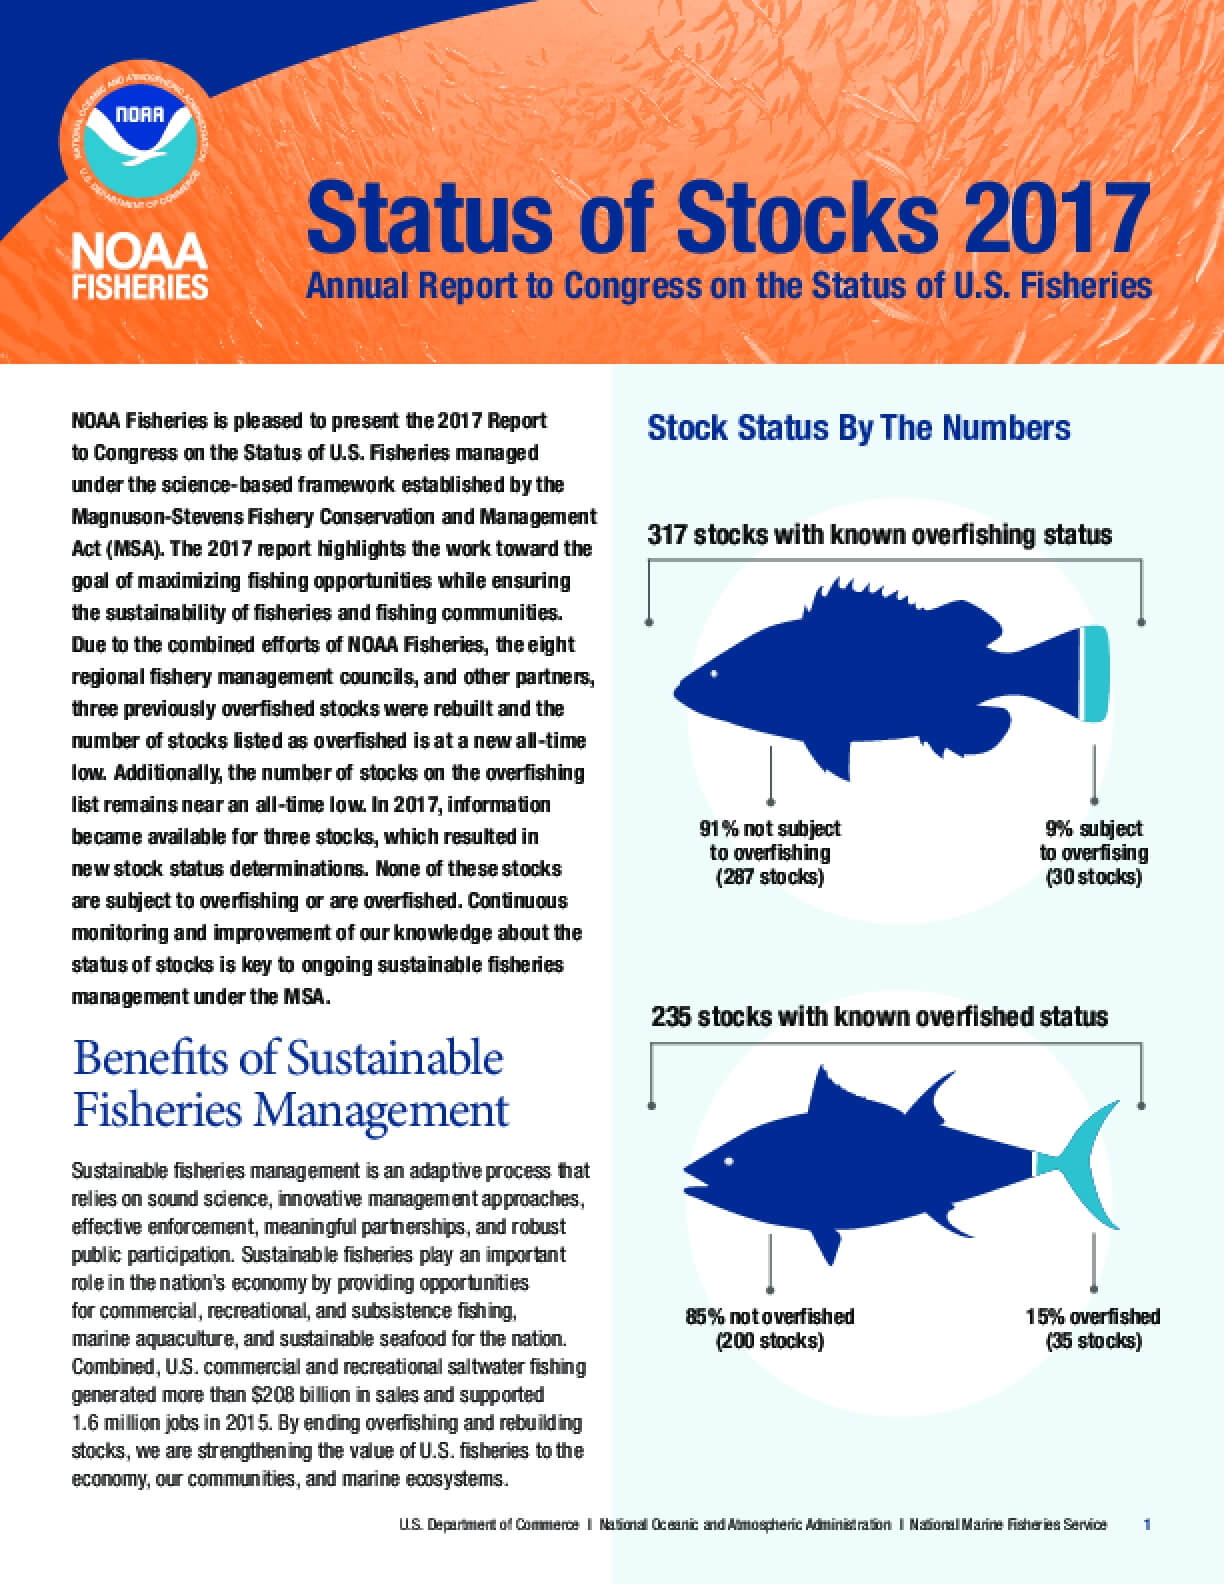 Status of Stocks 2017: Annual Report to Congress on the Status of U.S. Fisheries